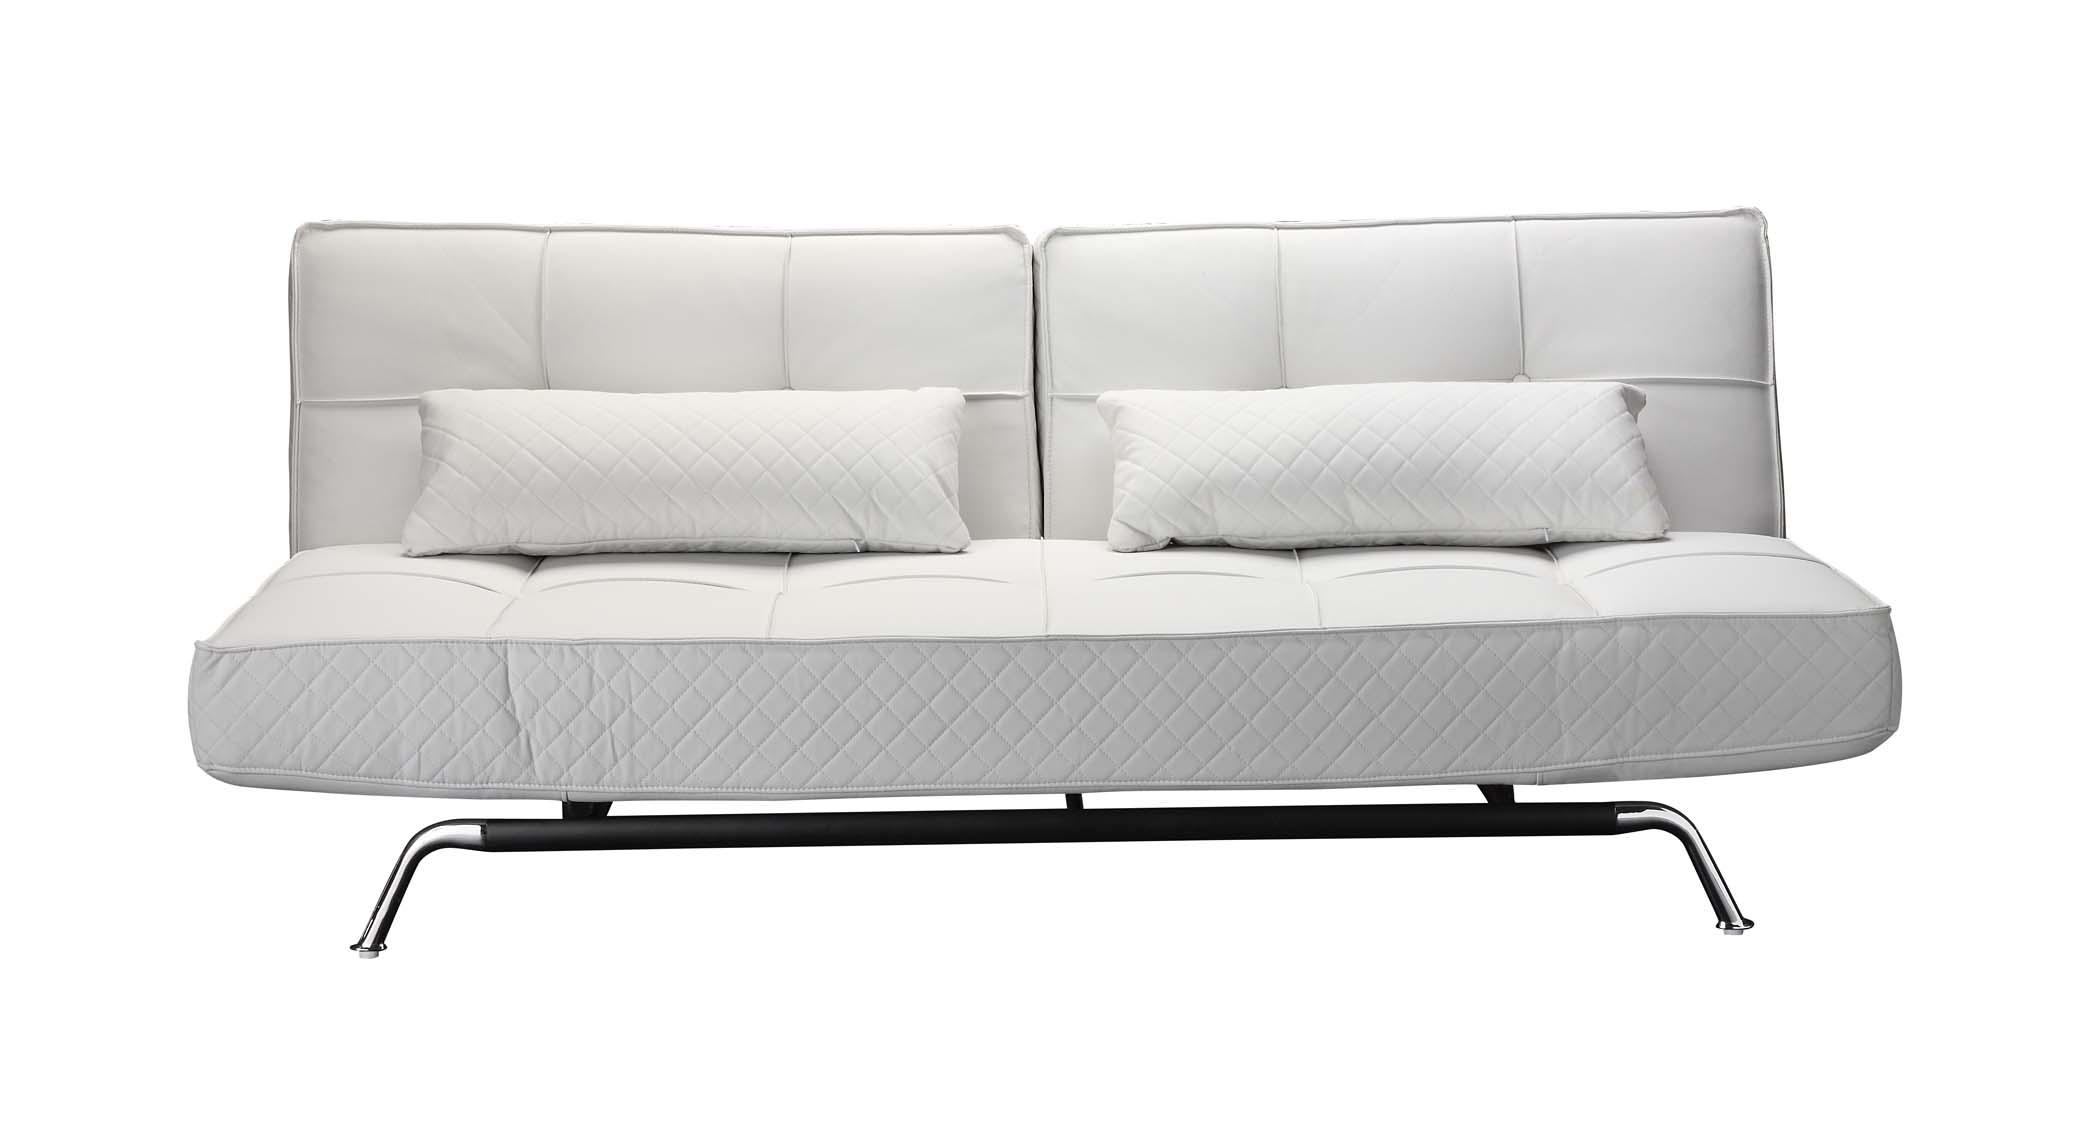 Beautiful Modern White Couch Contemporary Bonded Leather Sectional Inside White Modern Sofas (View 7 of 20)